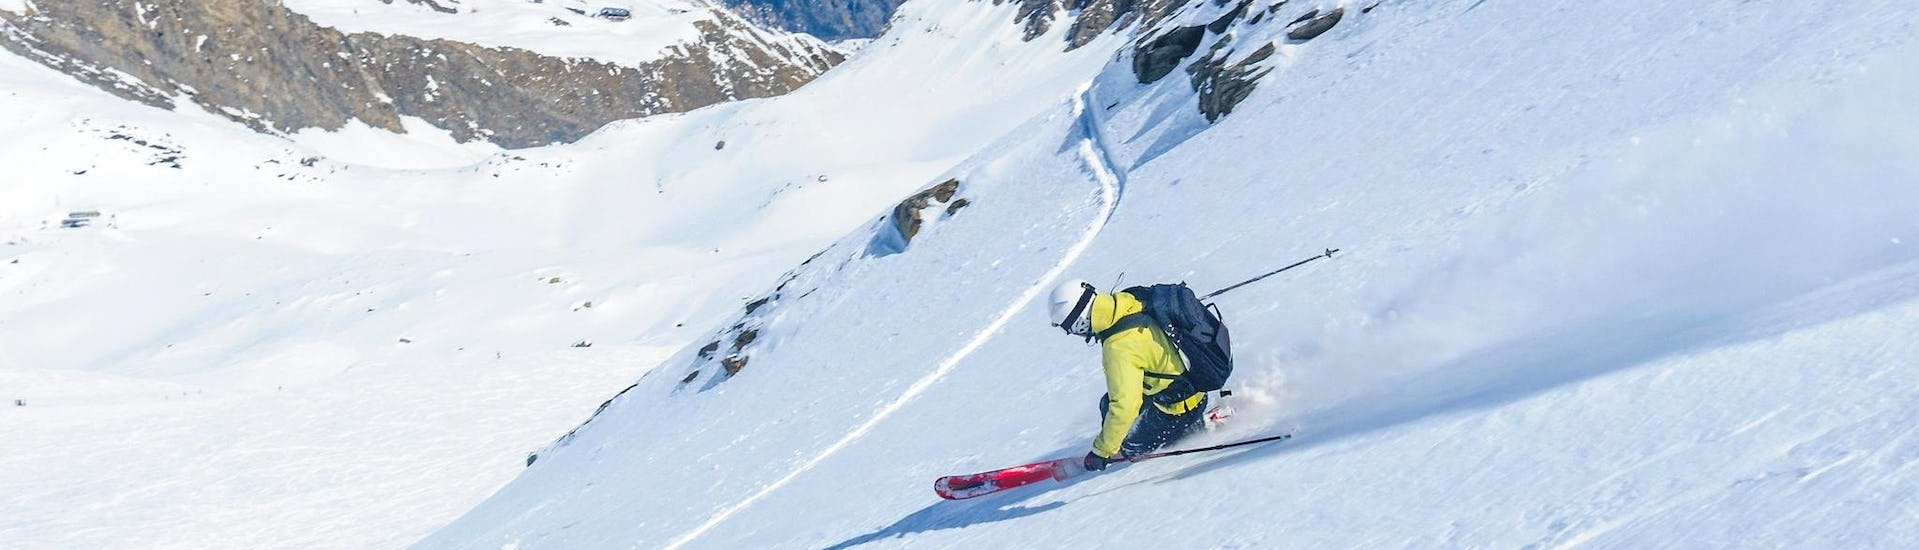 A freeride skier is skiing through the powder snow during one of the Private Off-Piste Skiing Lessons - Advanced organised by Alpinist.